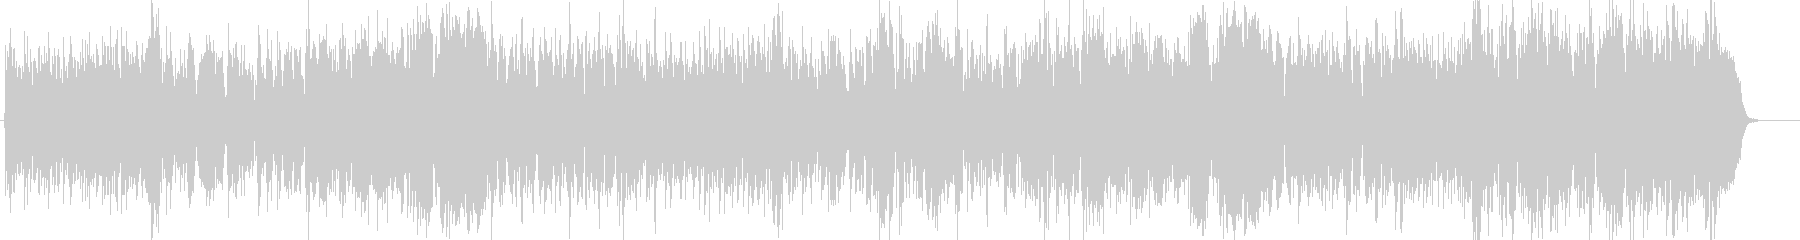 Modern BGM such as flute's unreproduced waveform